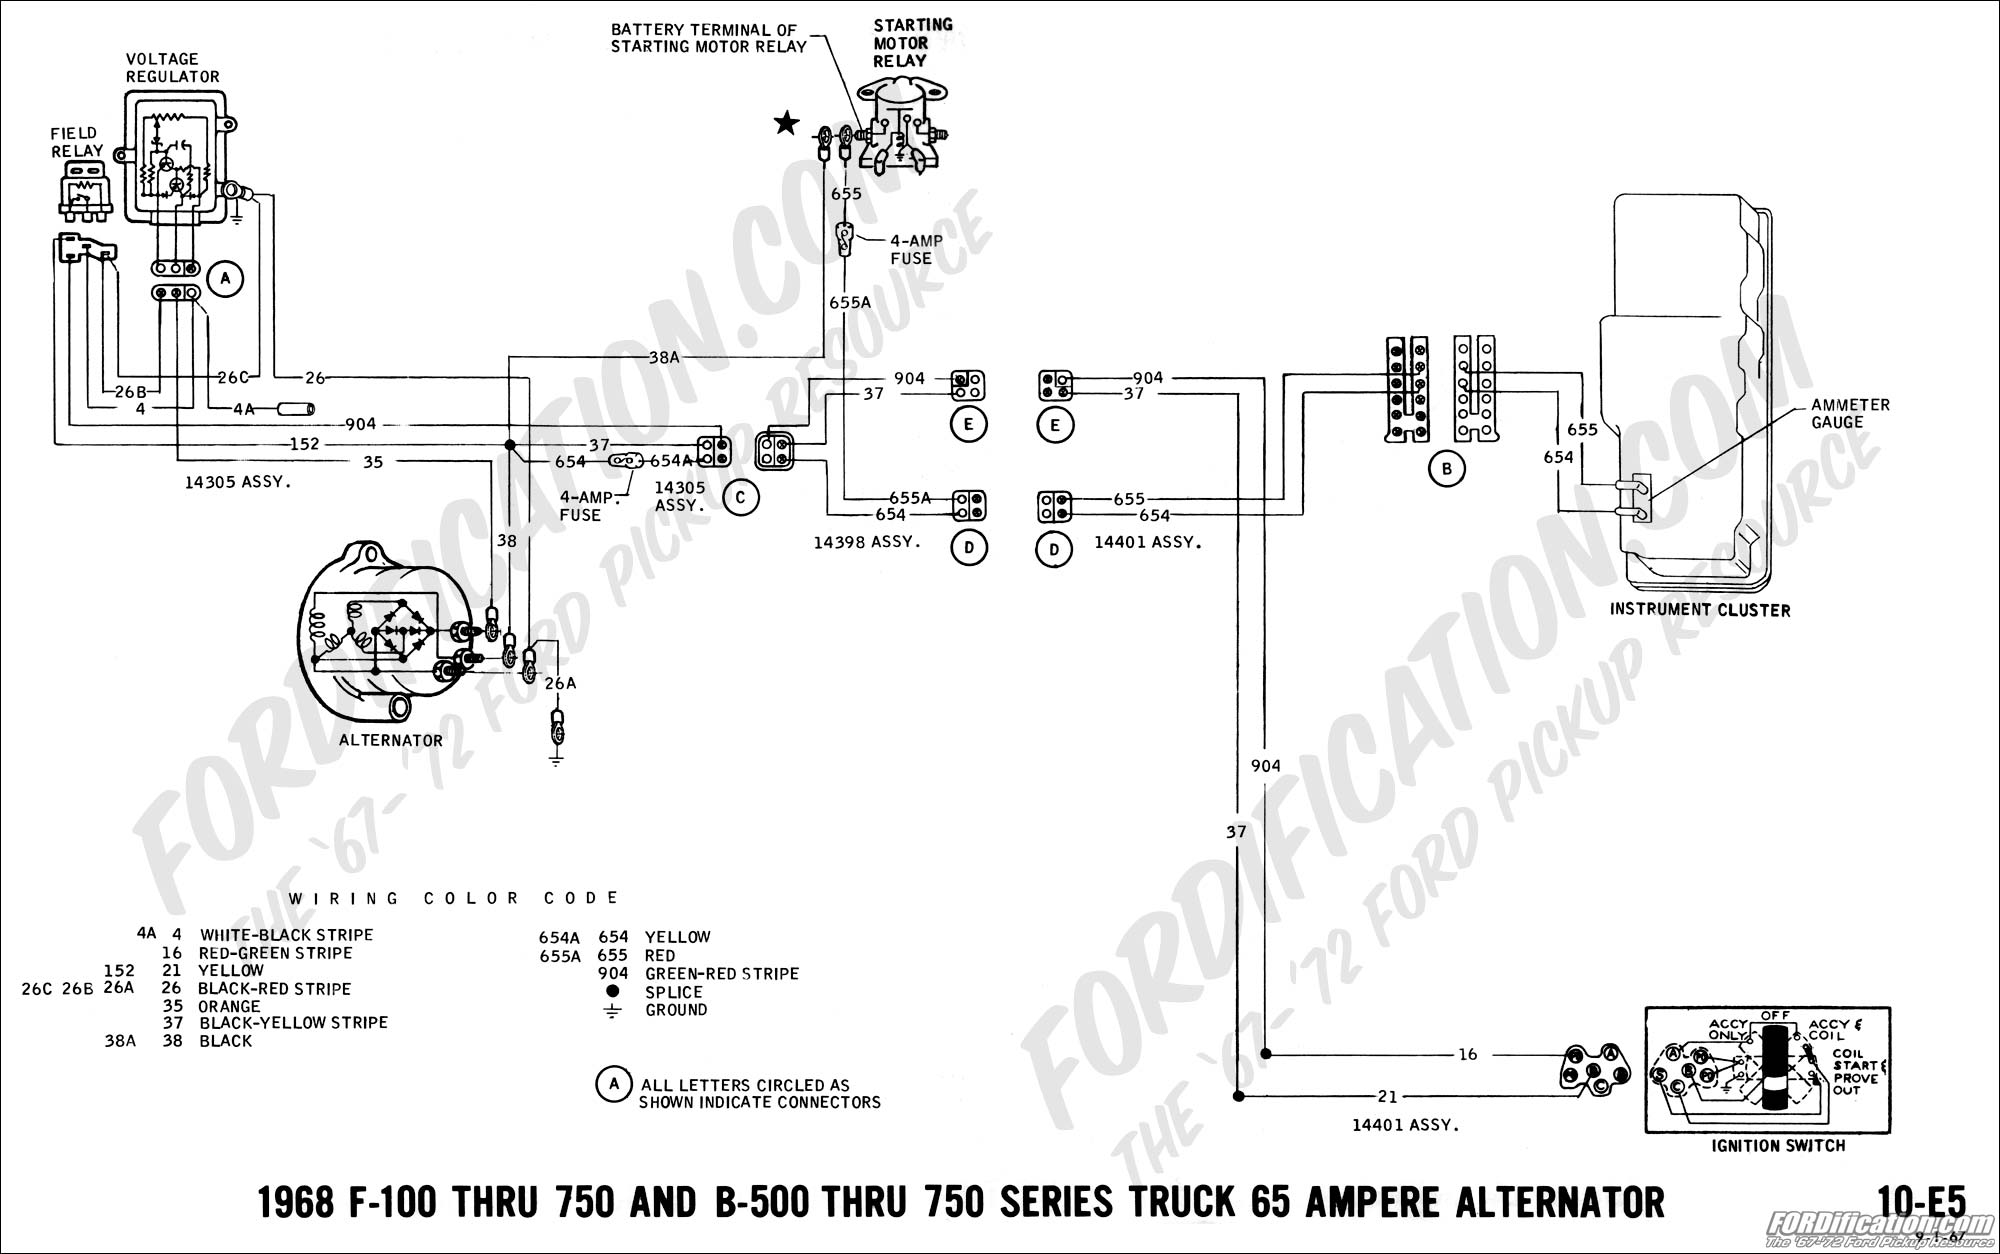 ford ranger alternator wiring diagram 2000 mustang gt radio 1966 pu data schema truck online 1969